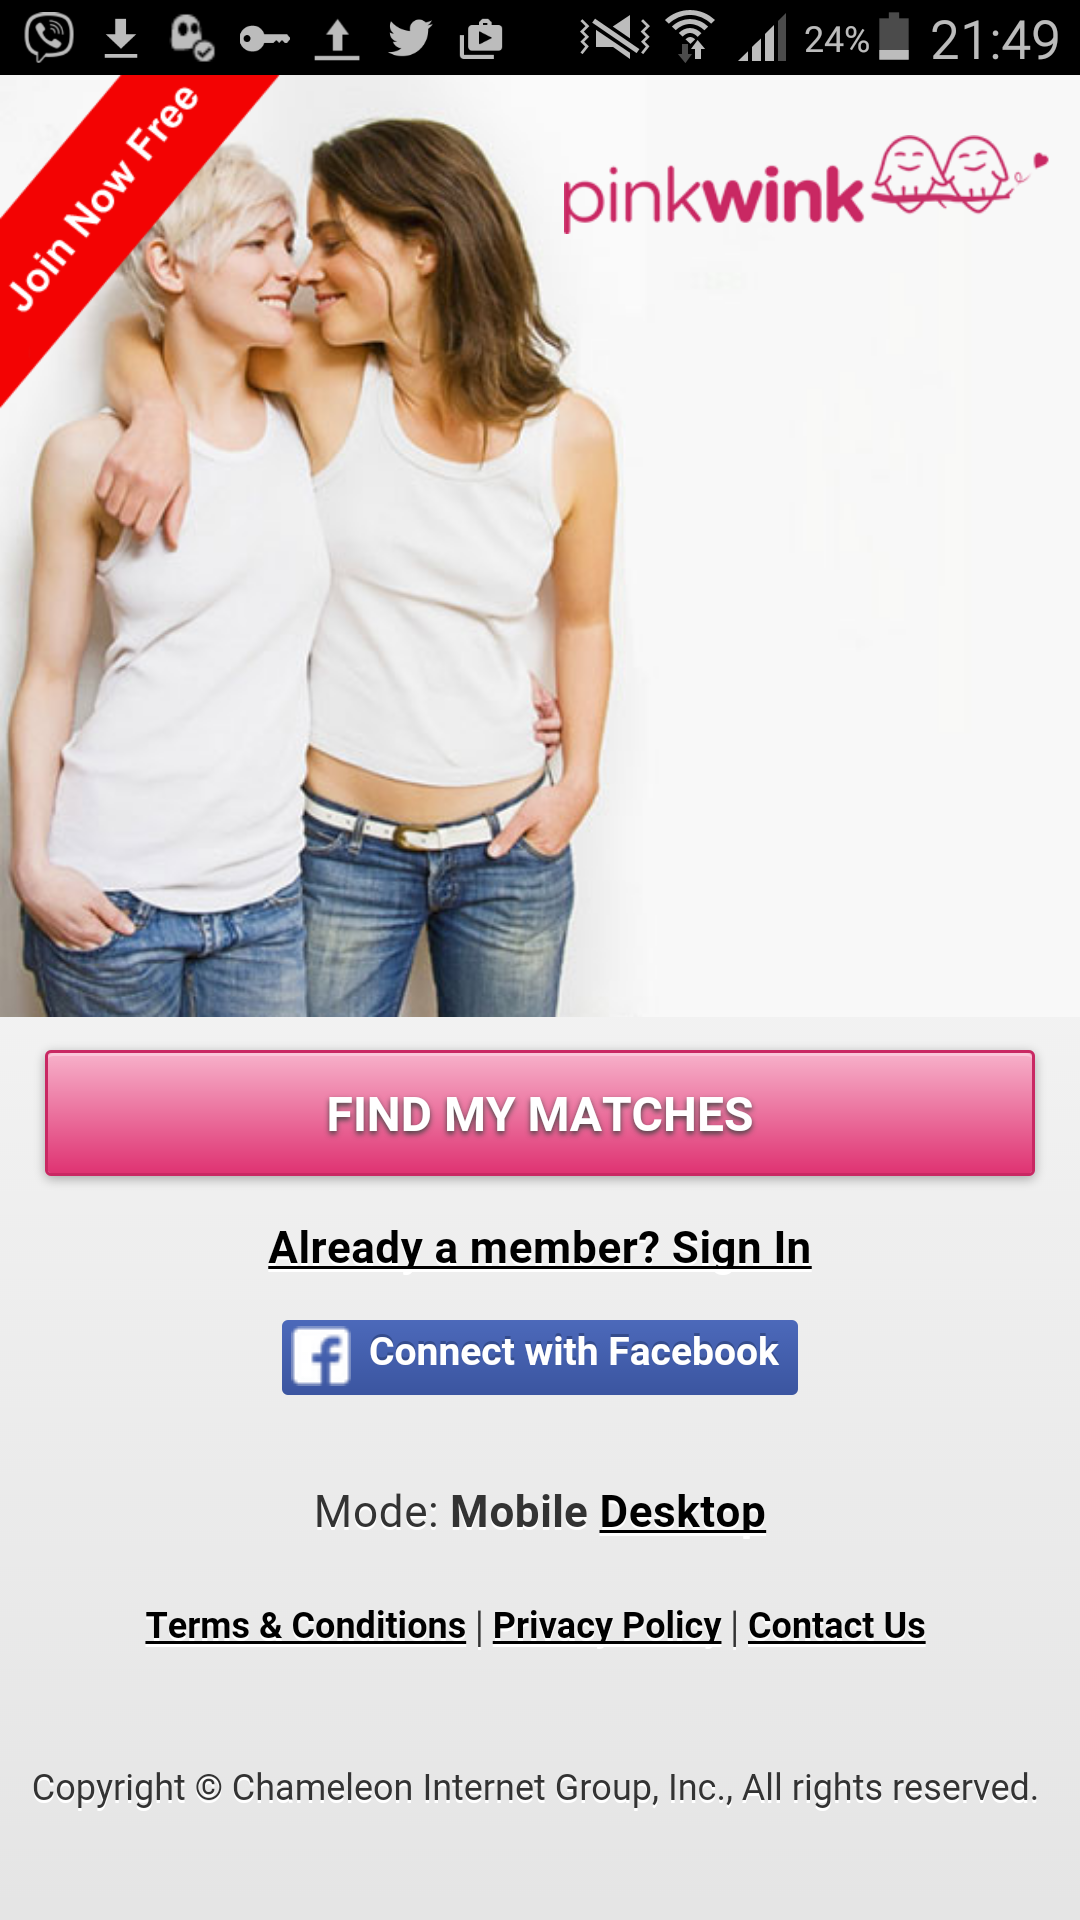 ohiowa lesbian dating site Find local lesbian and gay women on pinksofacom, a lesbian dating site for single women seeking other women for serious relationships, friends and support.